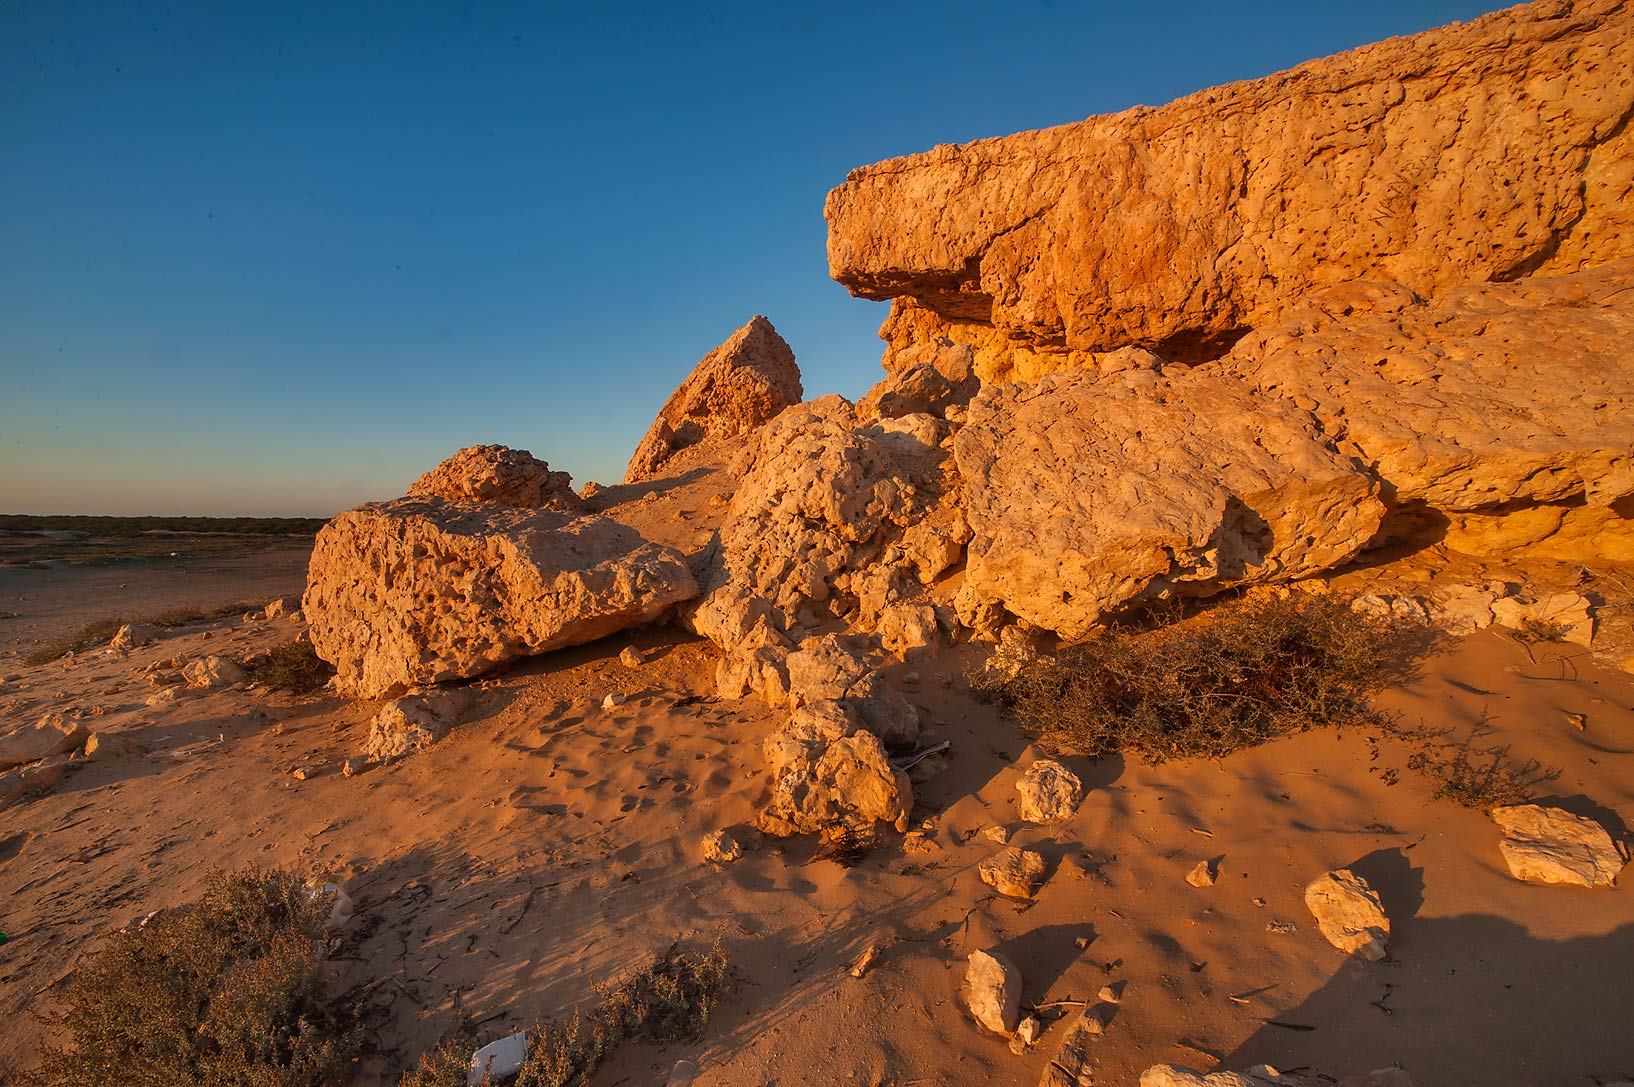 Cliffs of Purple Island (Jazirat Bin Ghanim) at sunrise. Al Khor, Qatar